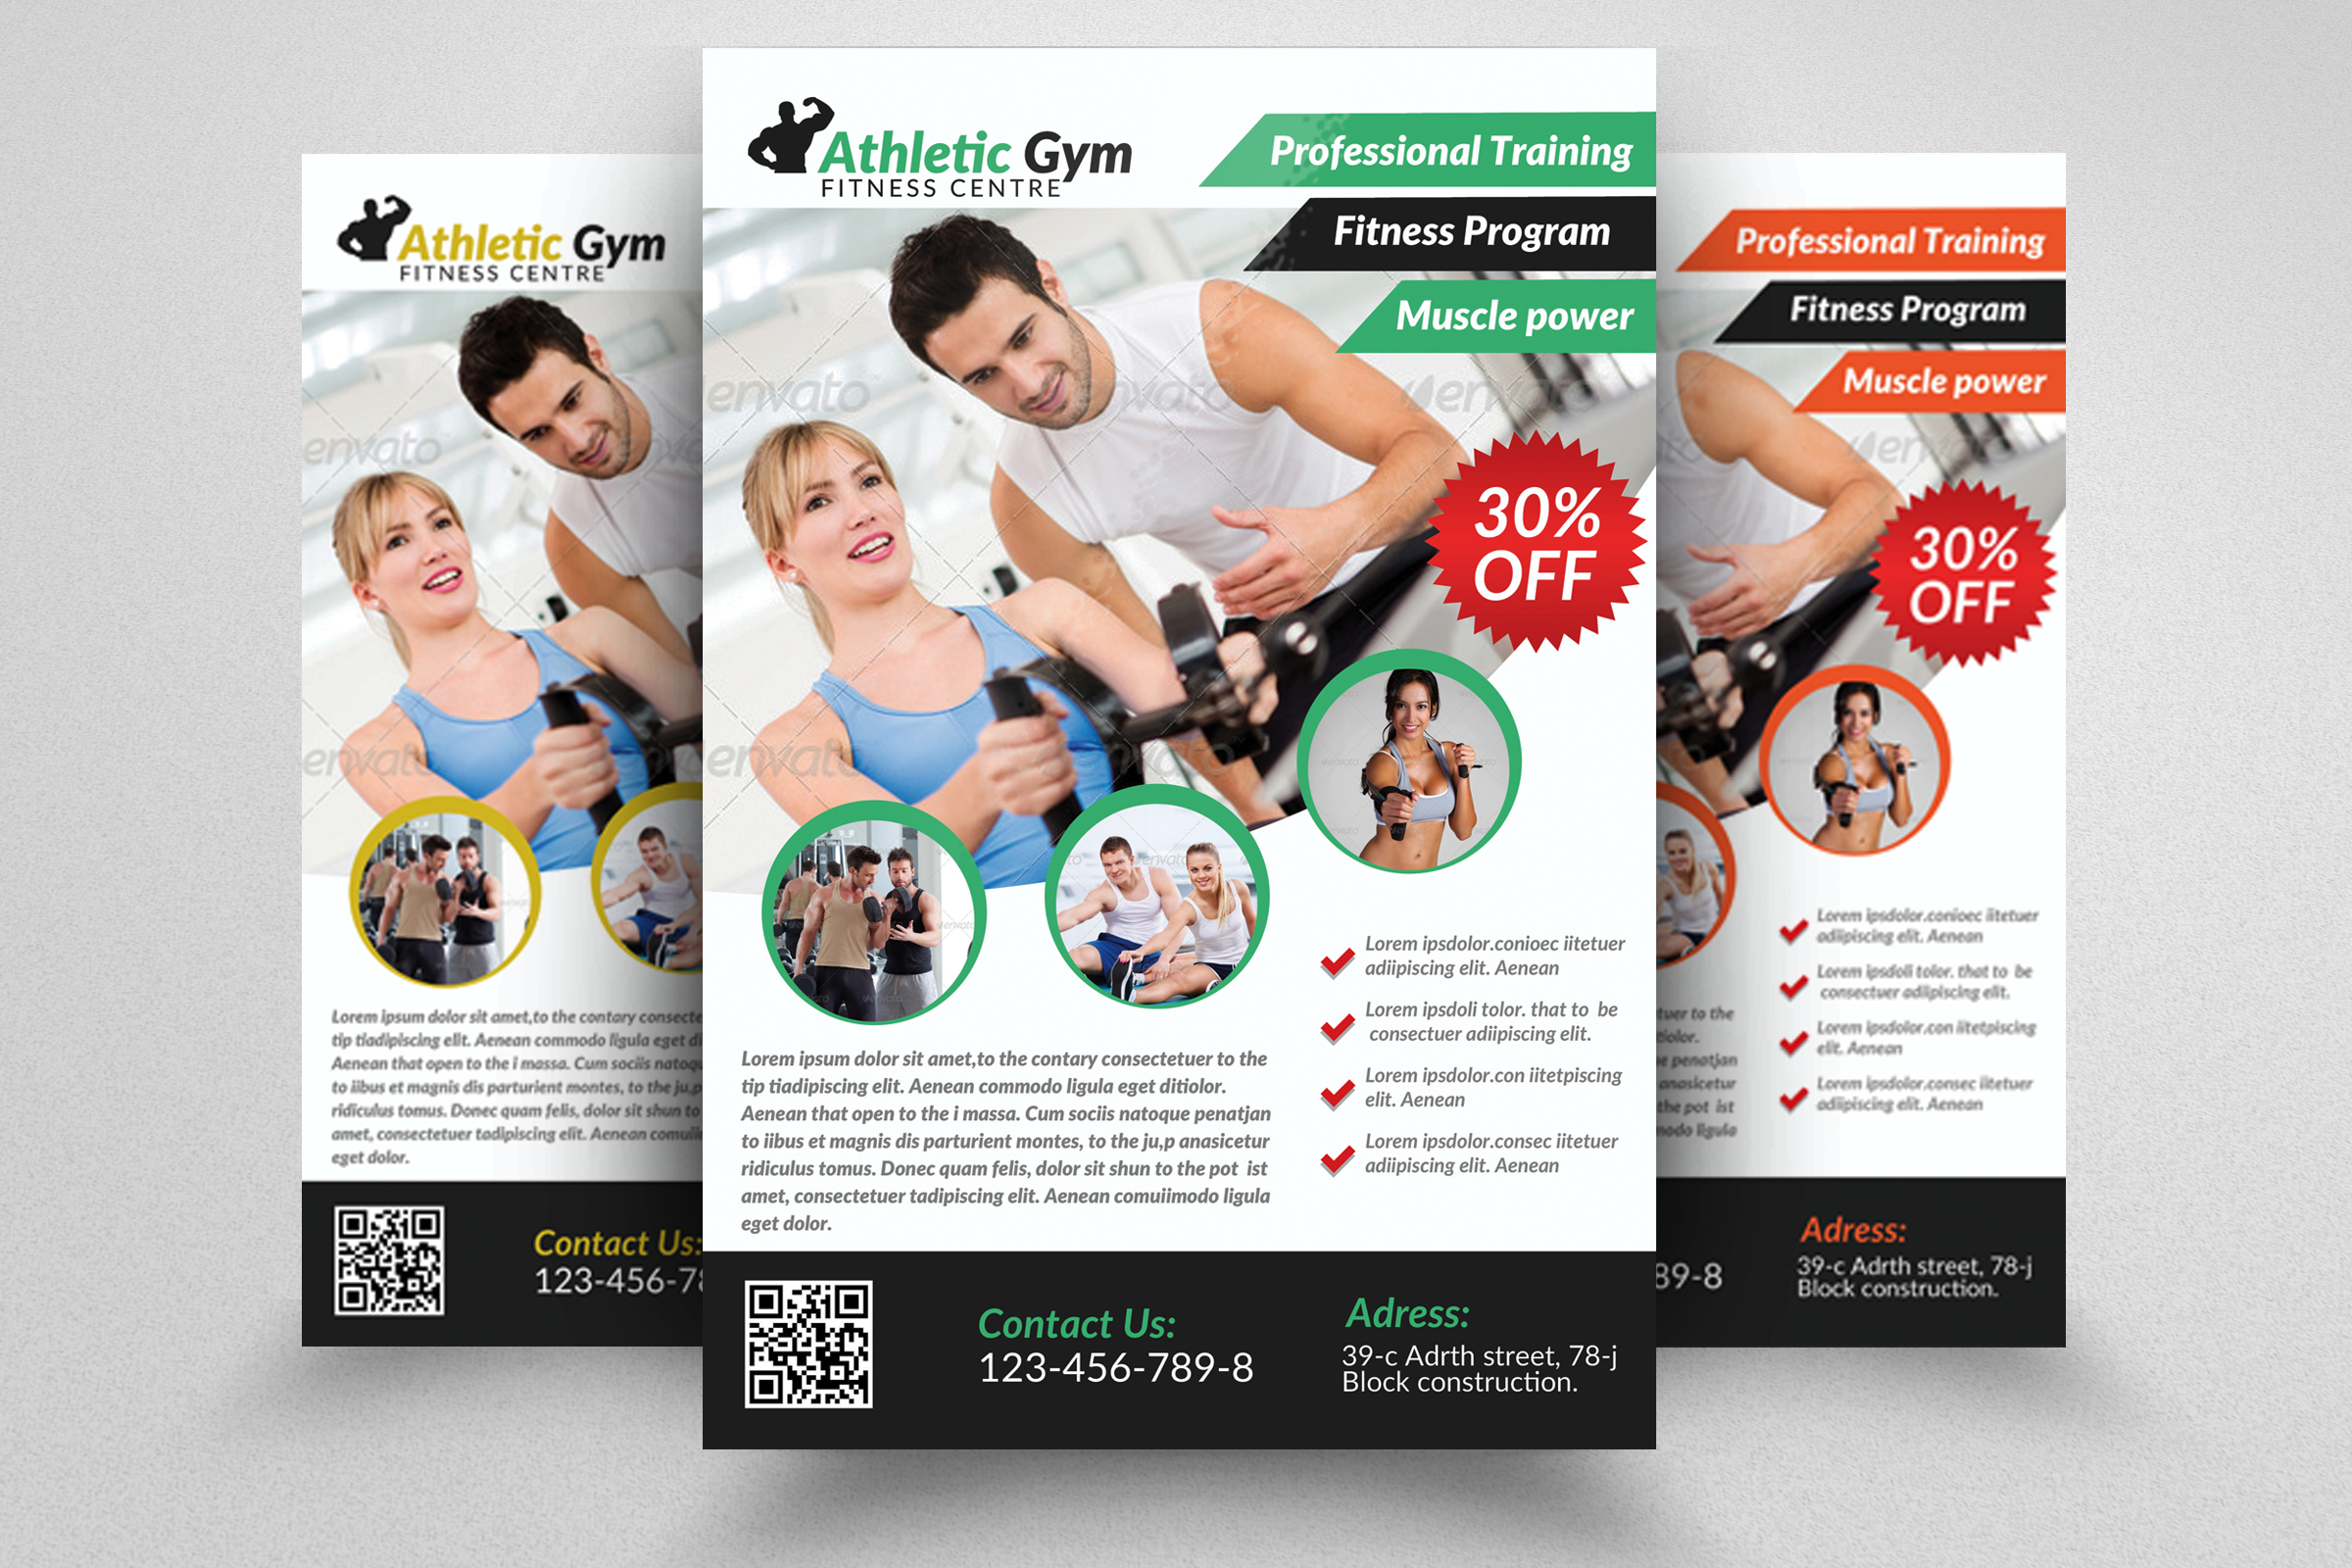 Training Plans Air Products Flyers - HD2400×1600